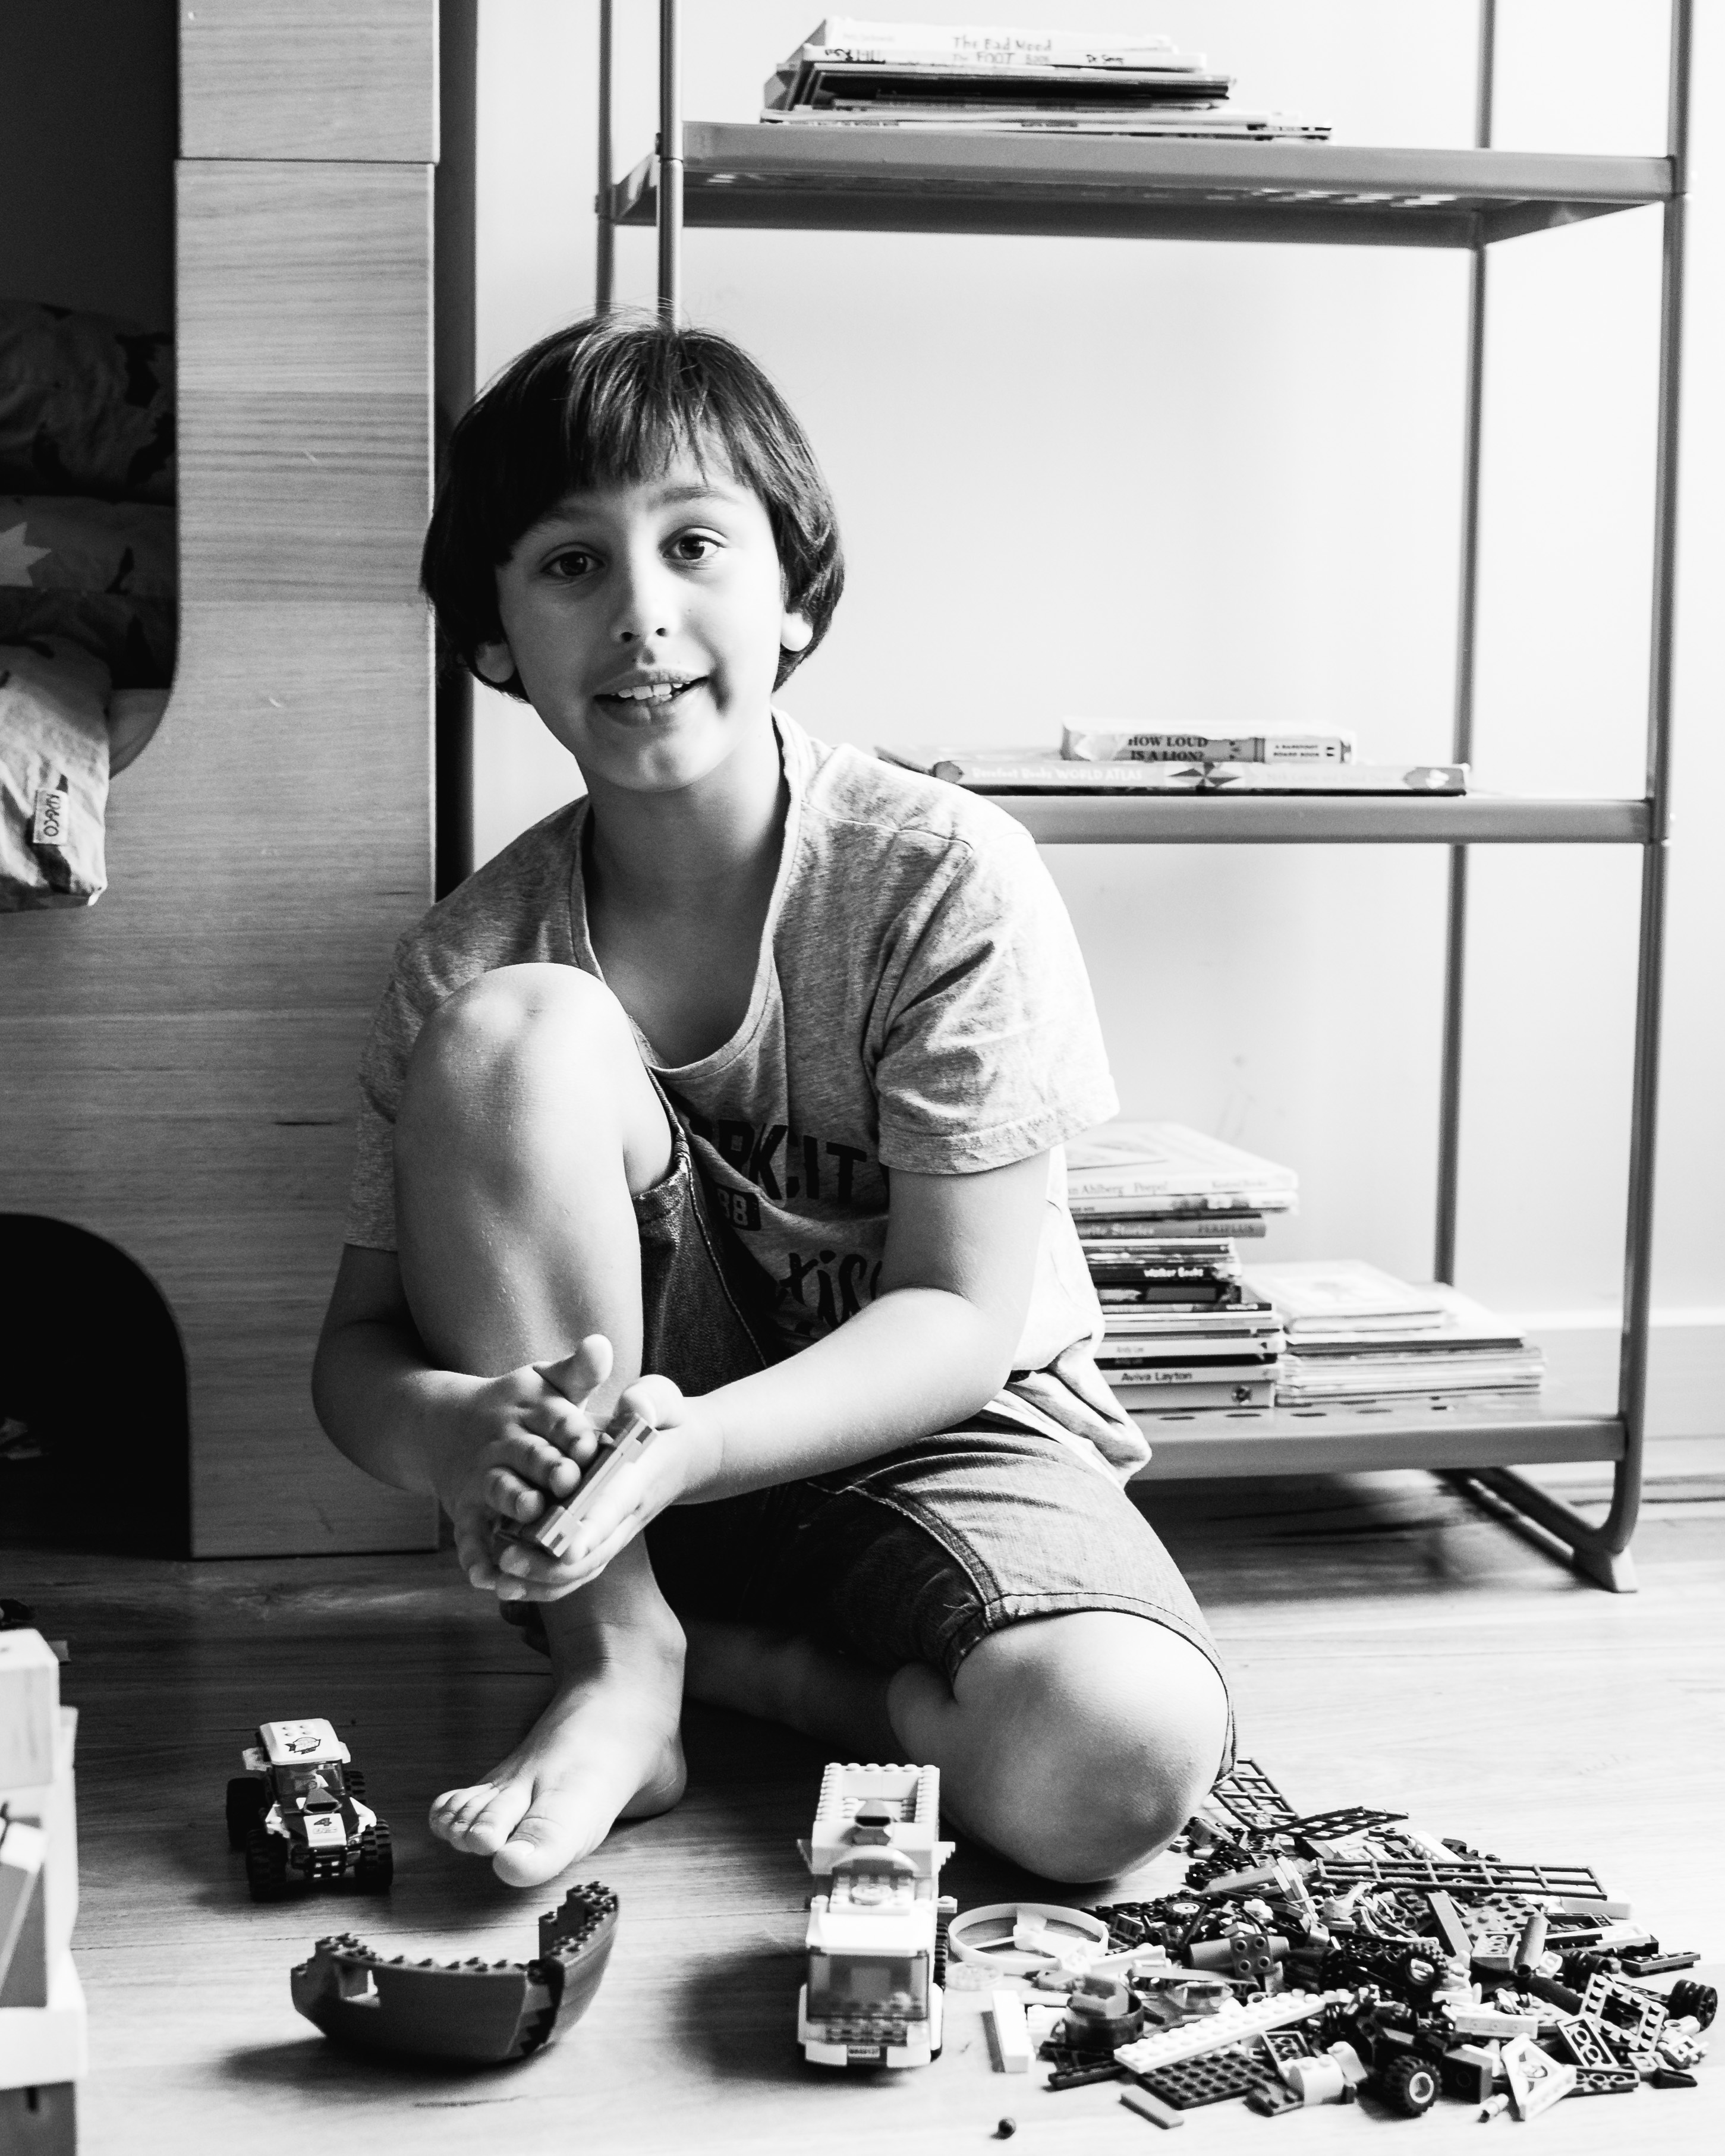 photograph of a boy talking while creating and building with Lego in his bedroom in Carlton North, Melbourne, Australia